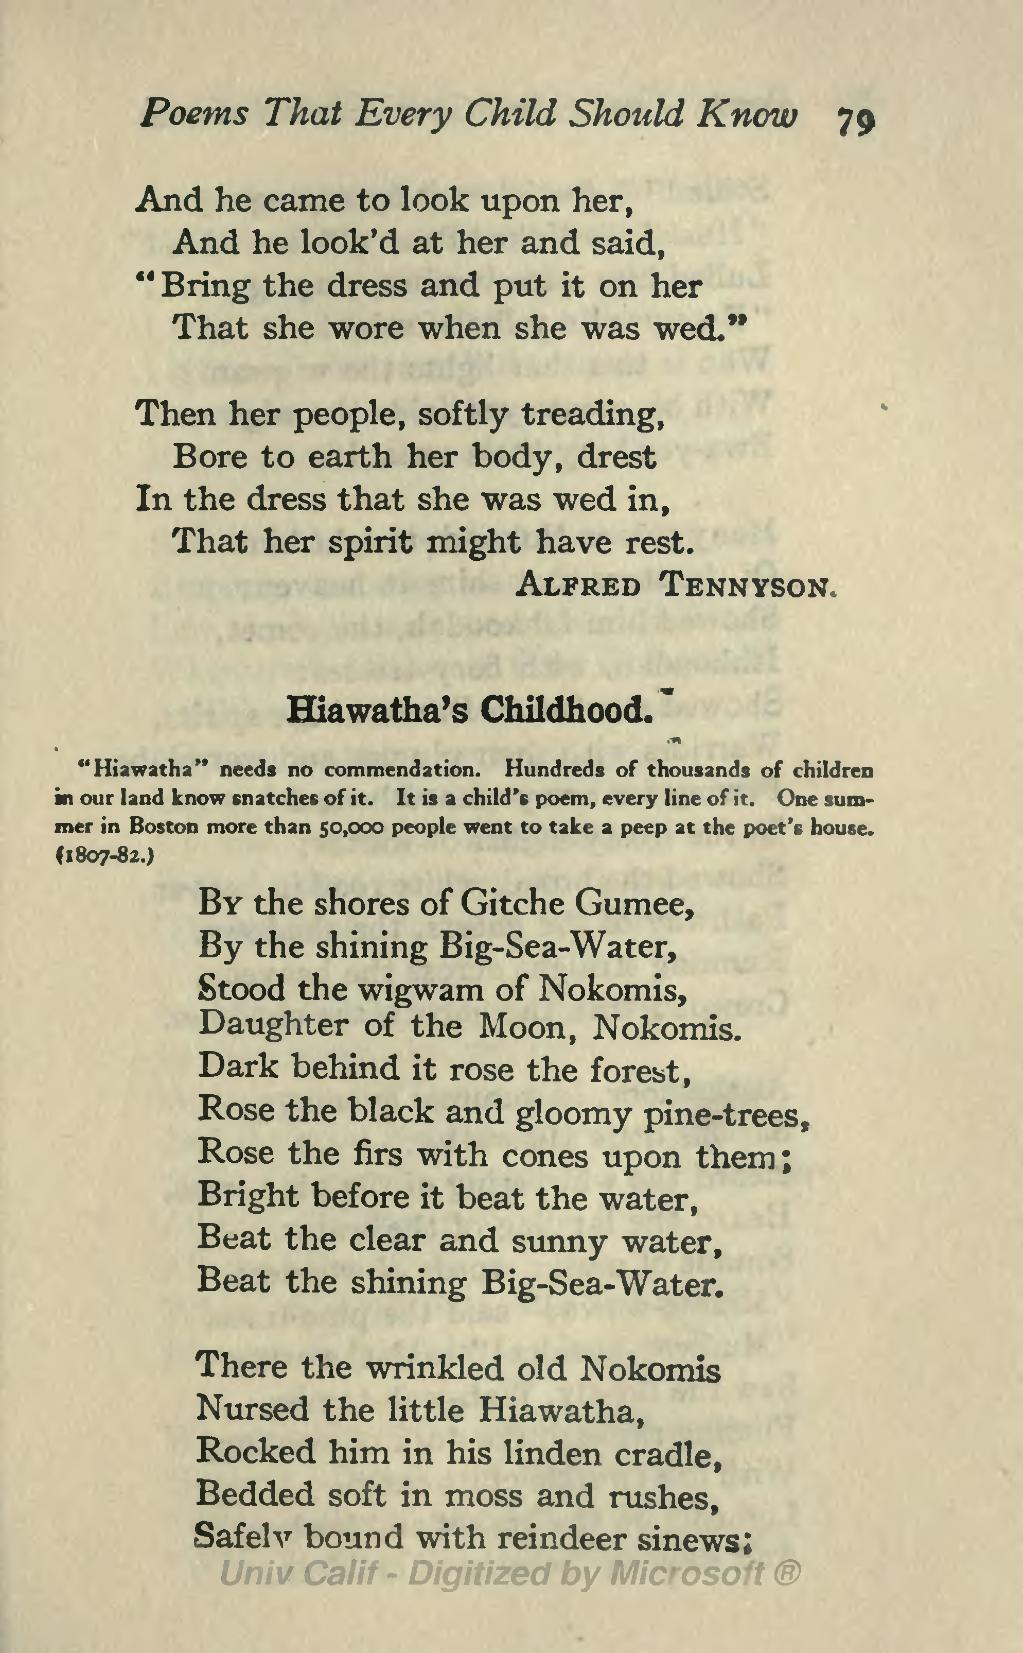 page poems that every child should know ed burt djvu  page poems that every child should know ed burt 1904 djvu 117 wikisource the online library